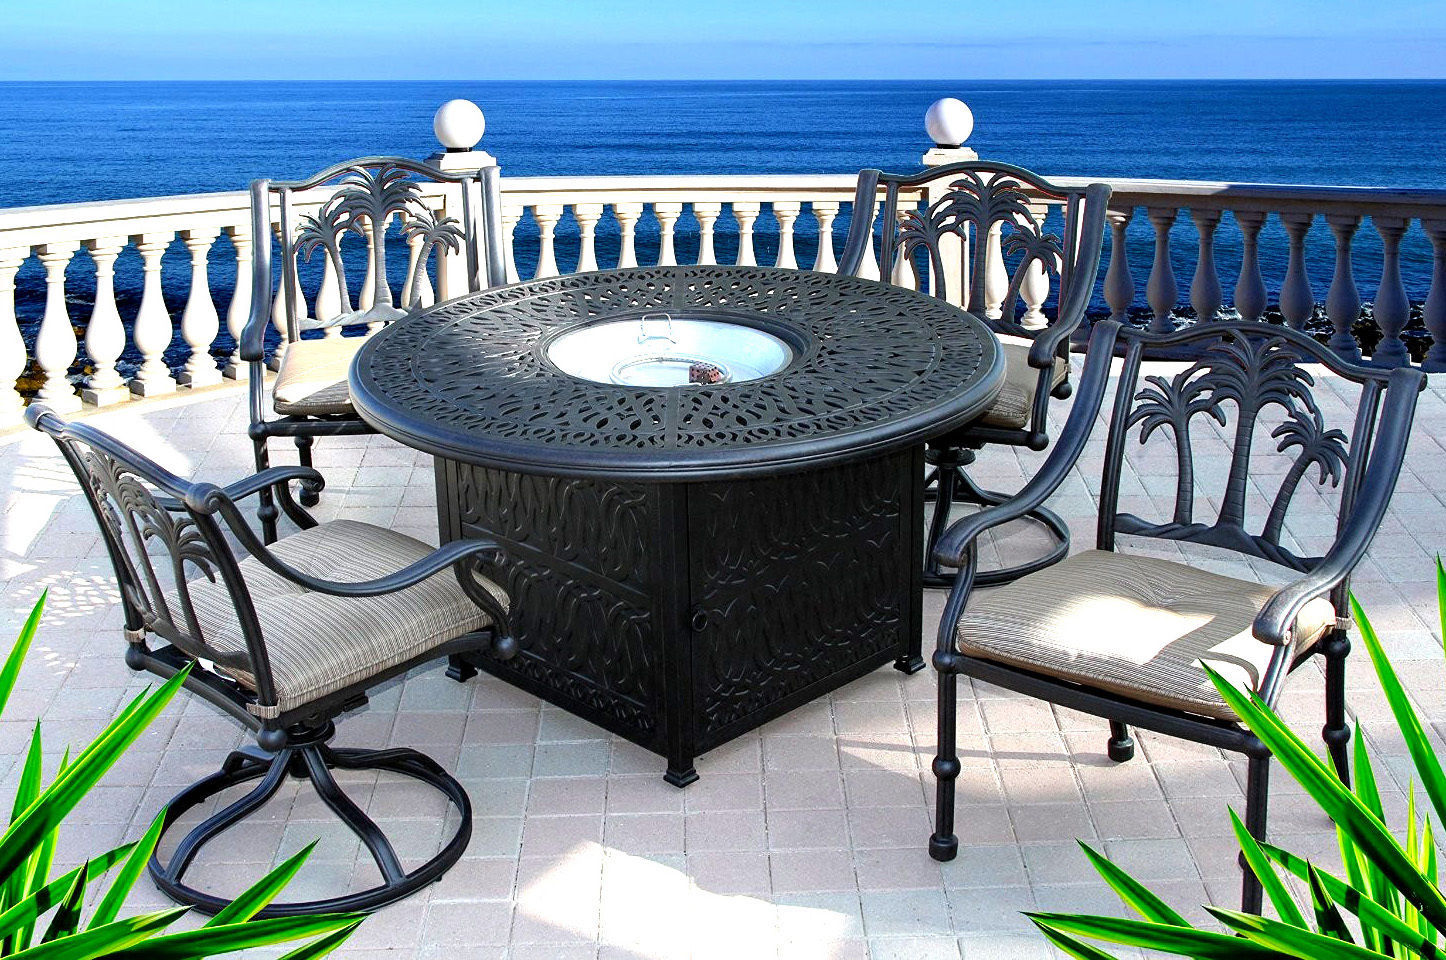 Dining table with fire pit in middle 5 piece patio cast aluminum furniture set